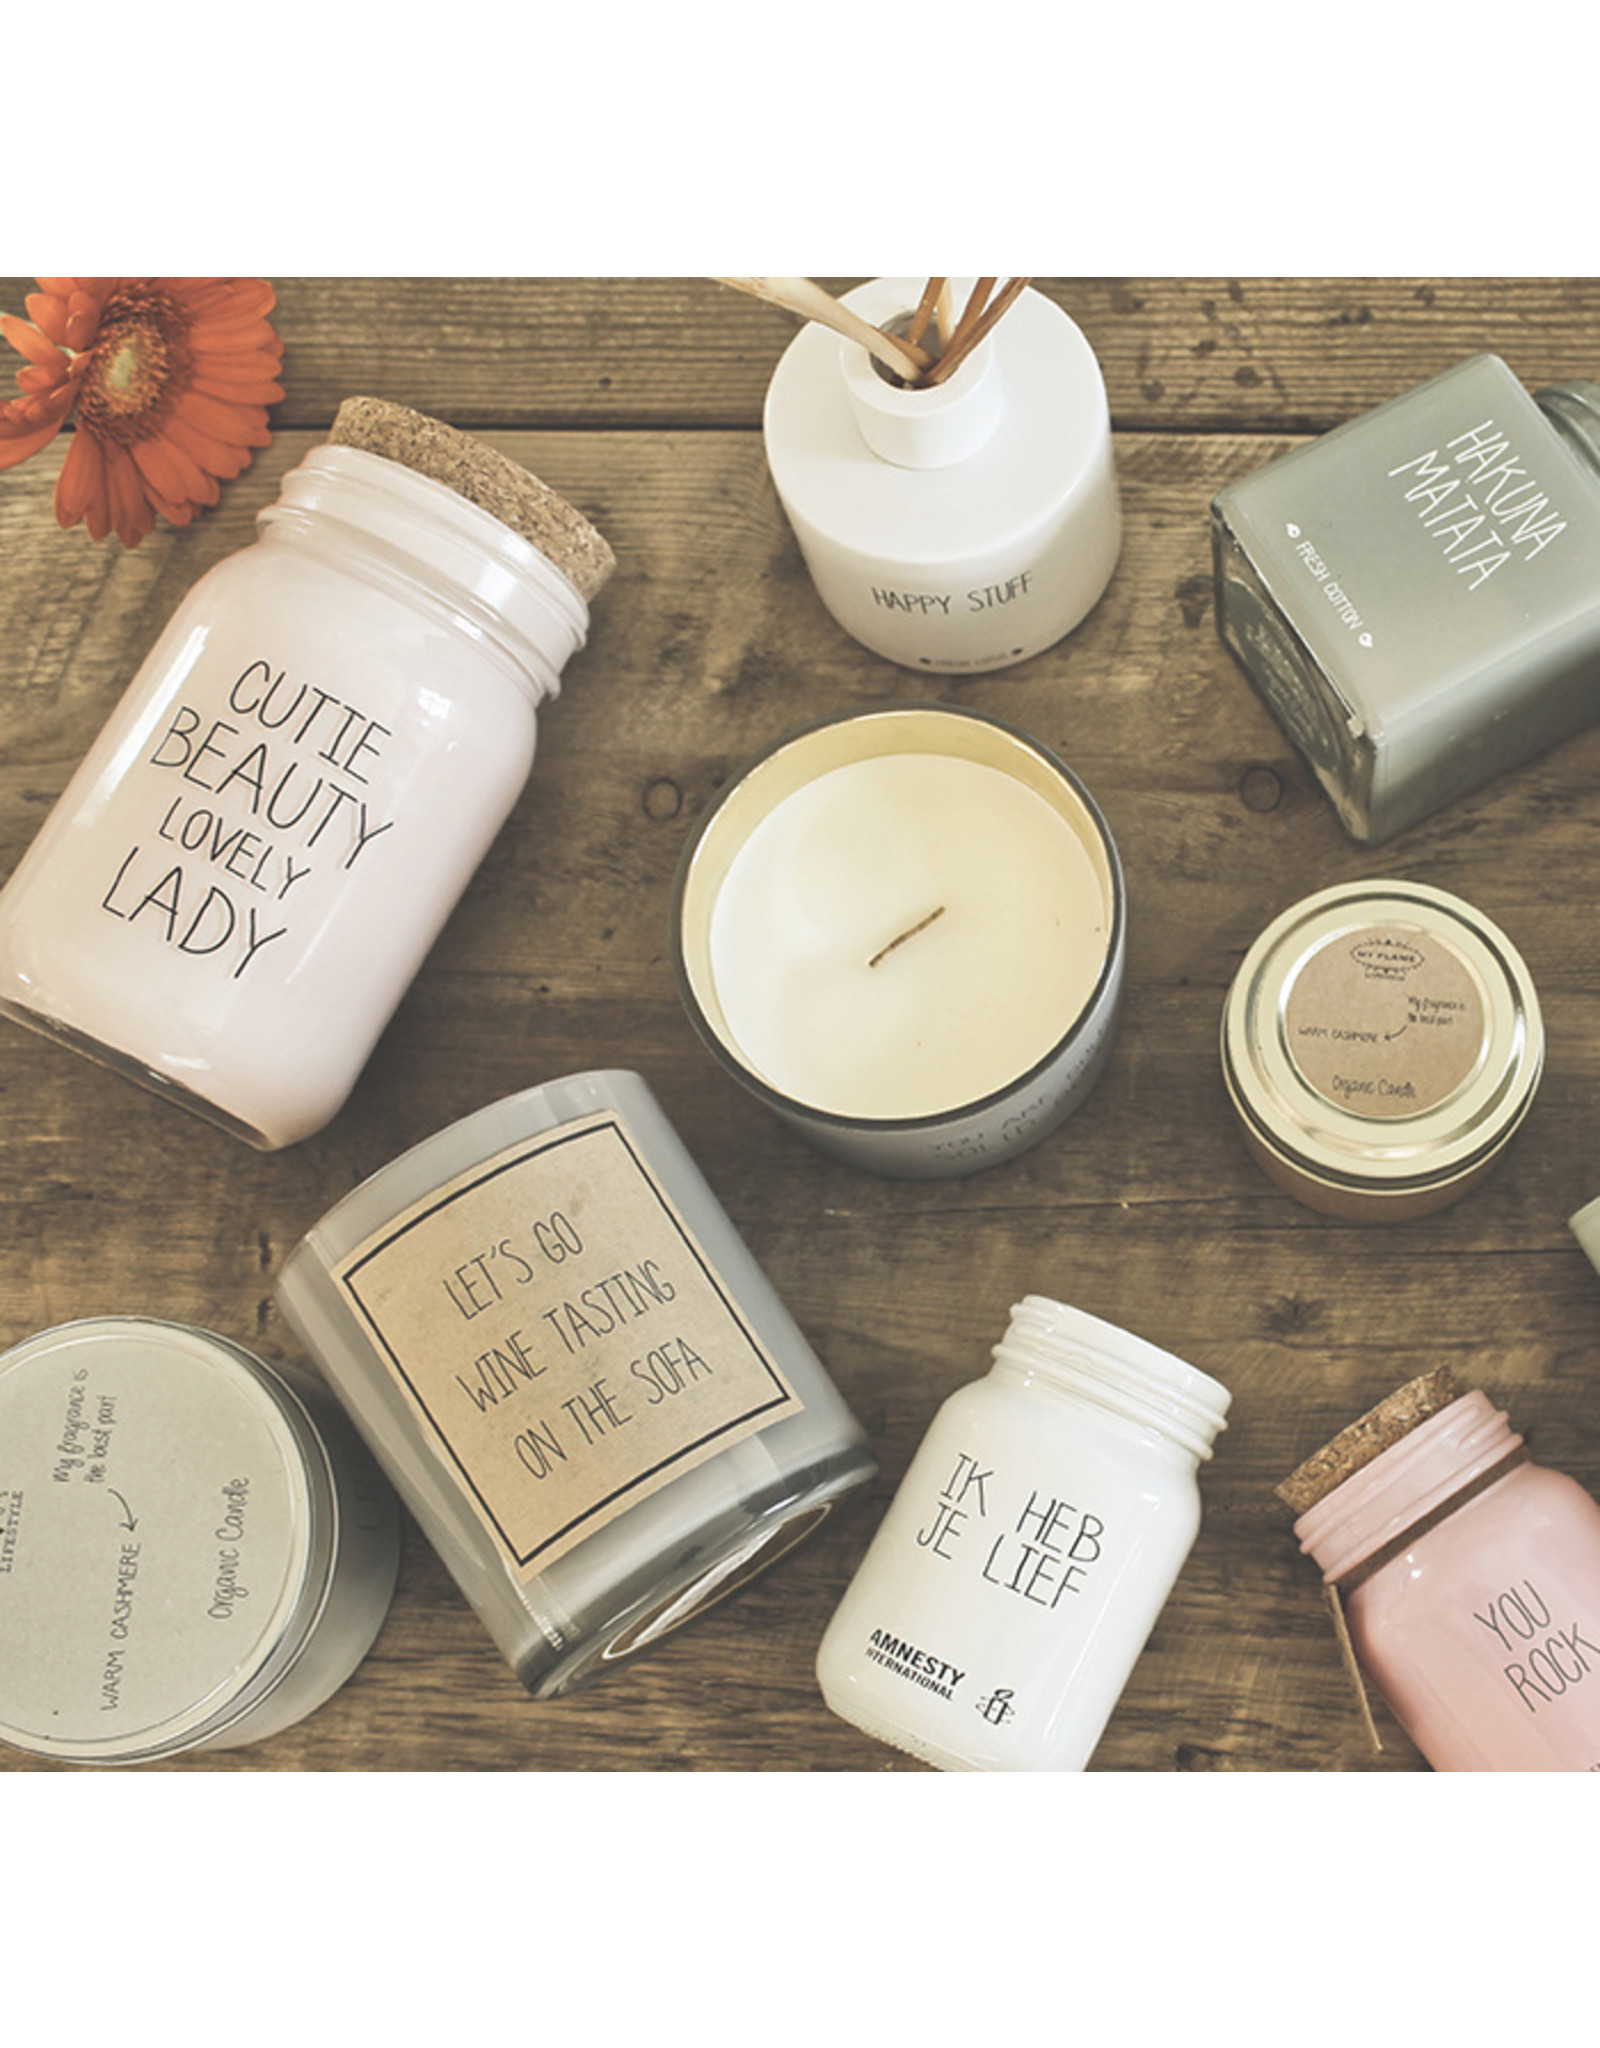 My flame Lifestyle Sojakaars | Cutie Beauty | Geur : Green Tea Time